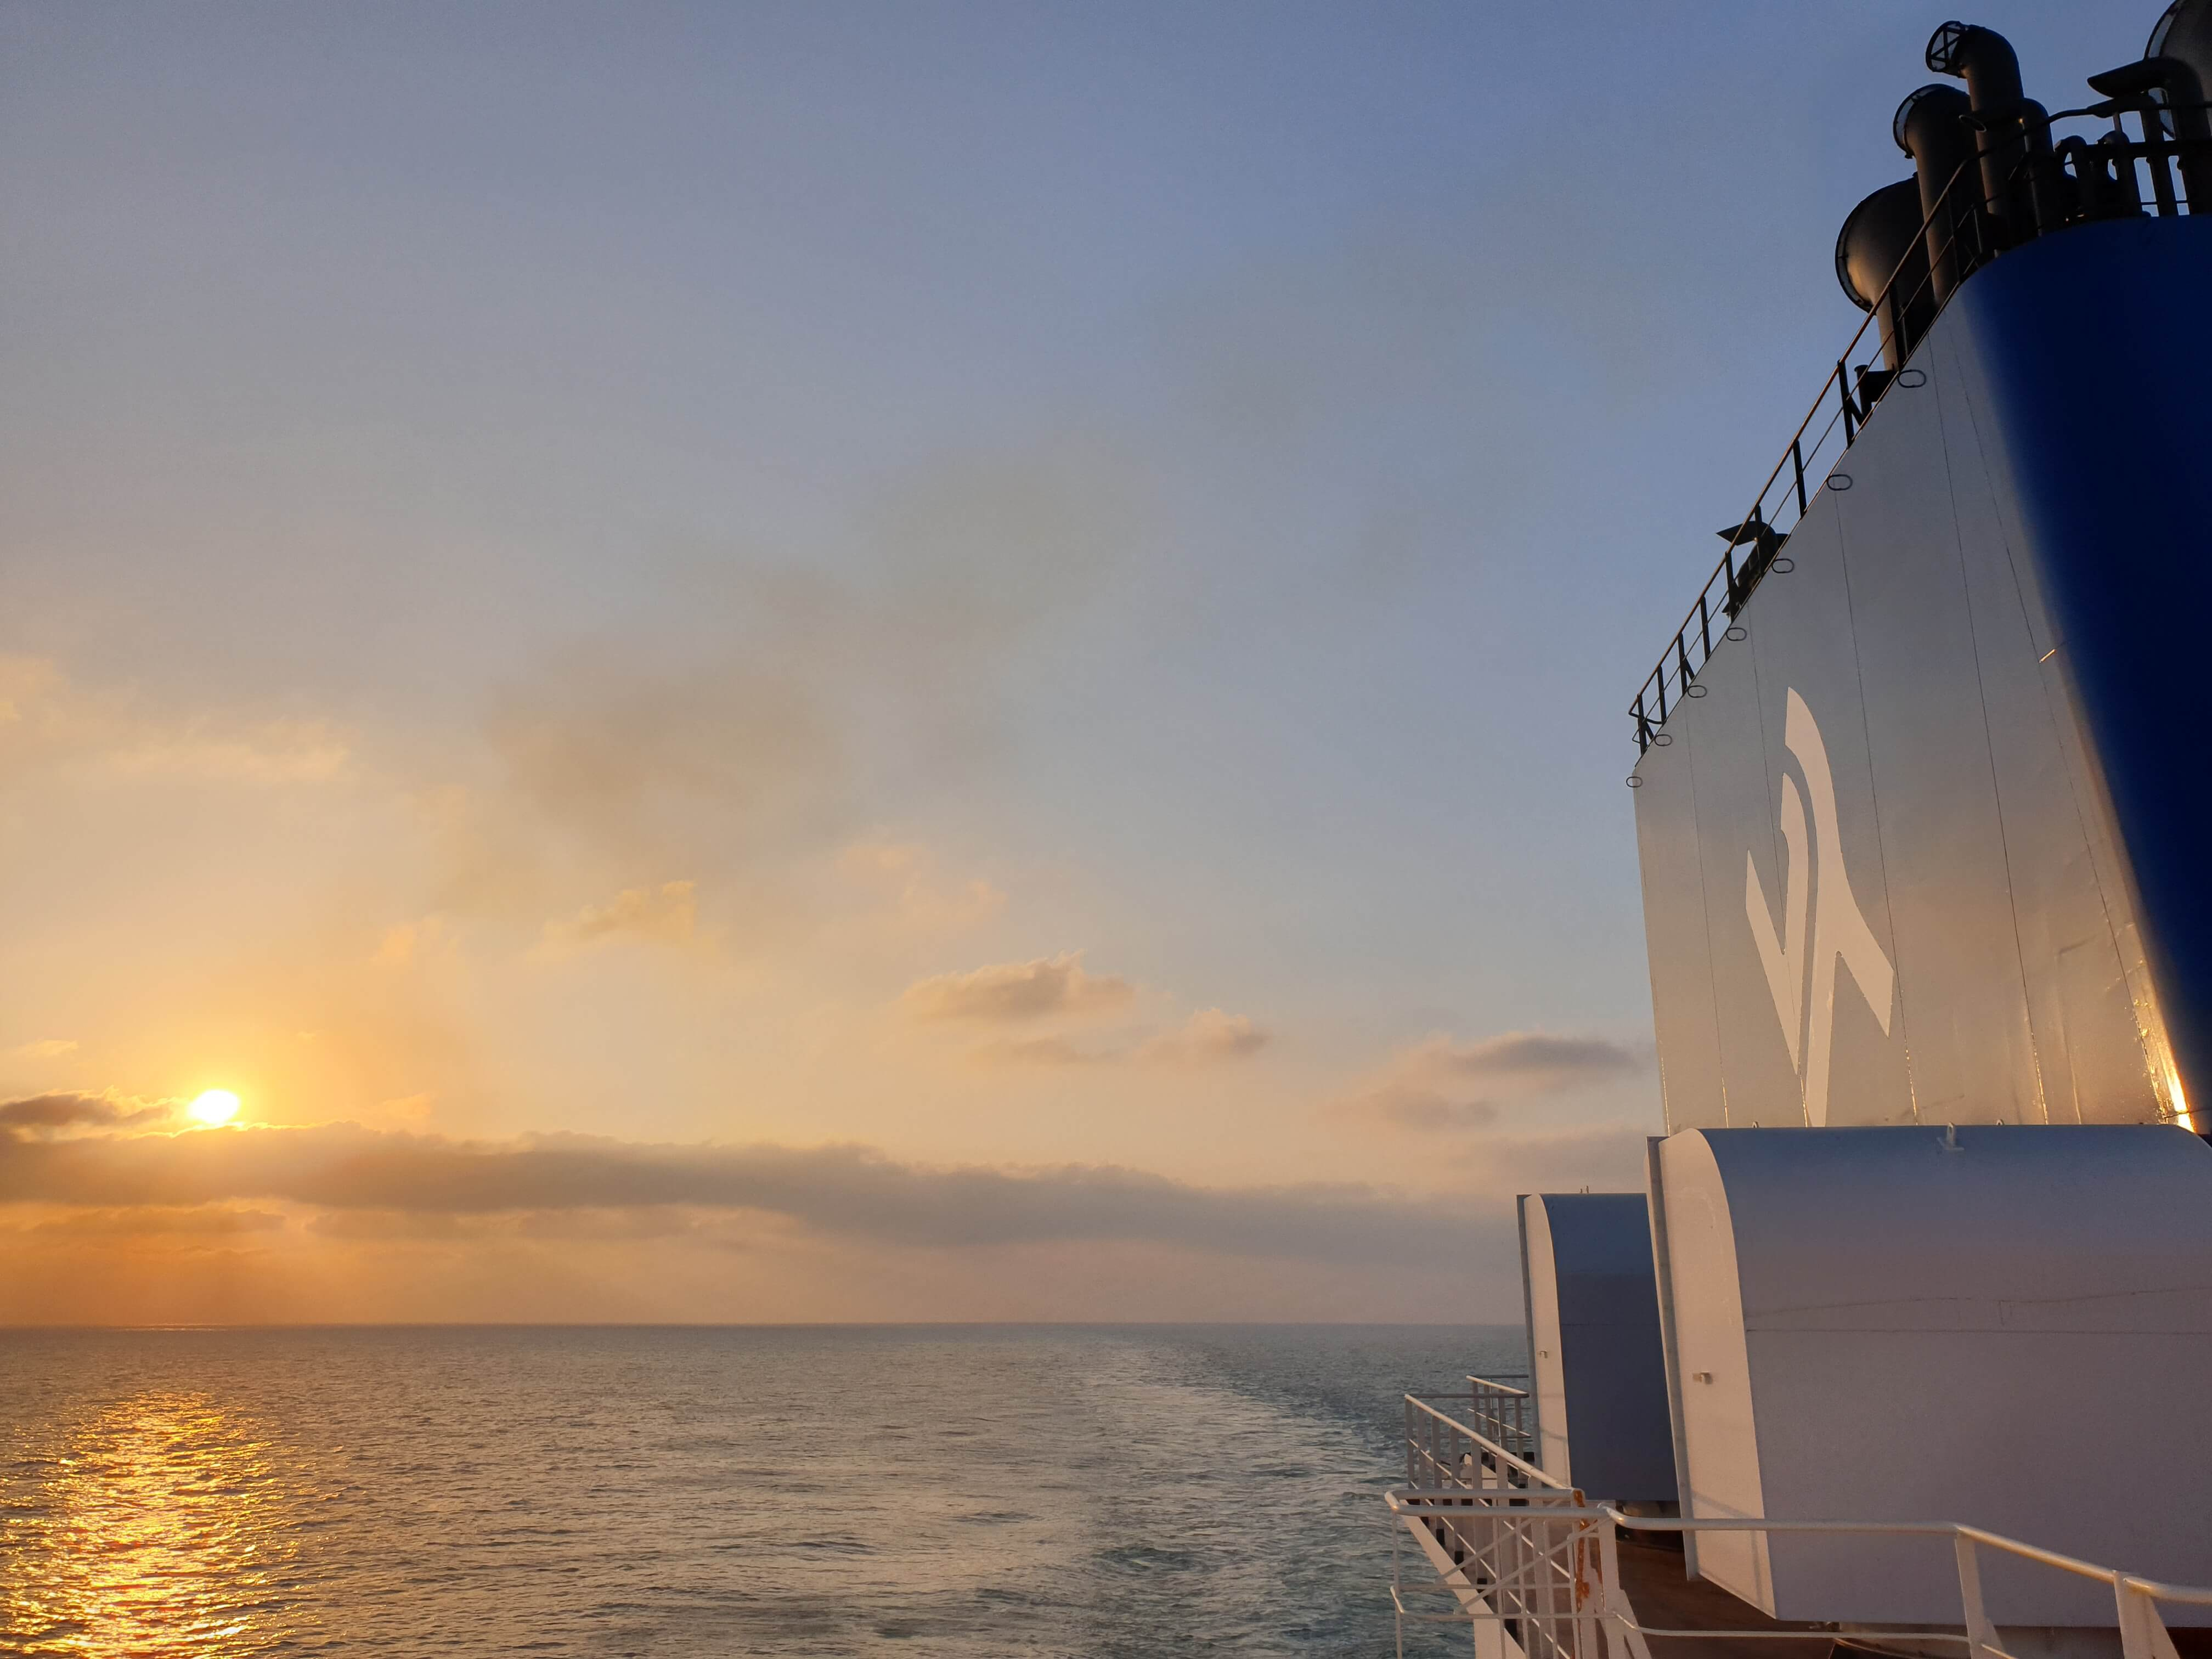 The sea trials of M/T Miaoulis21